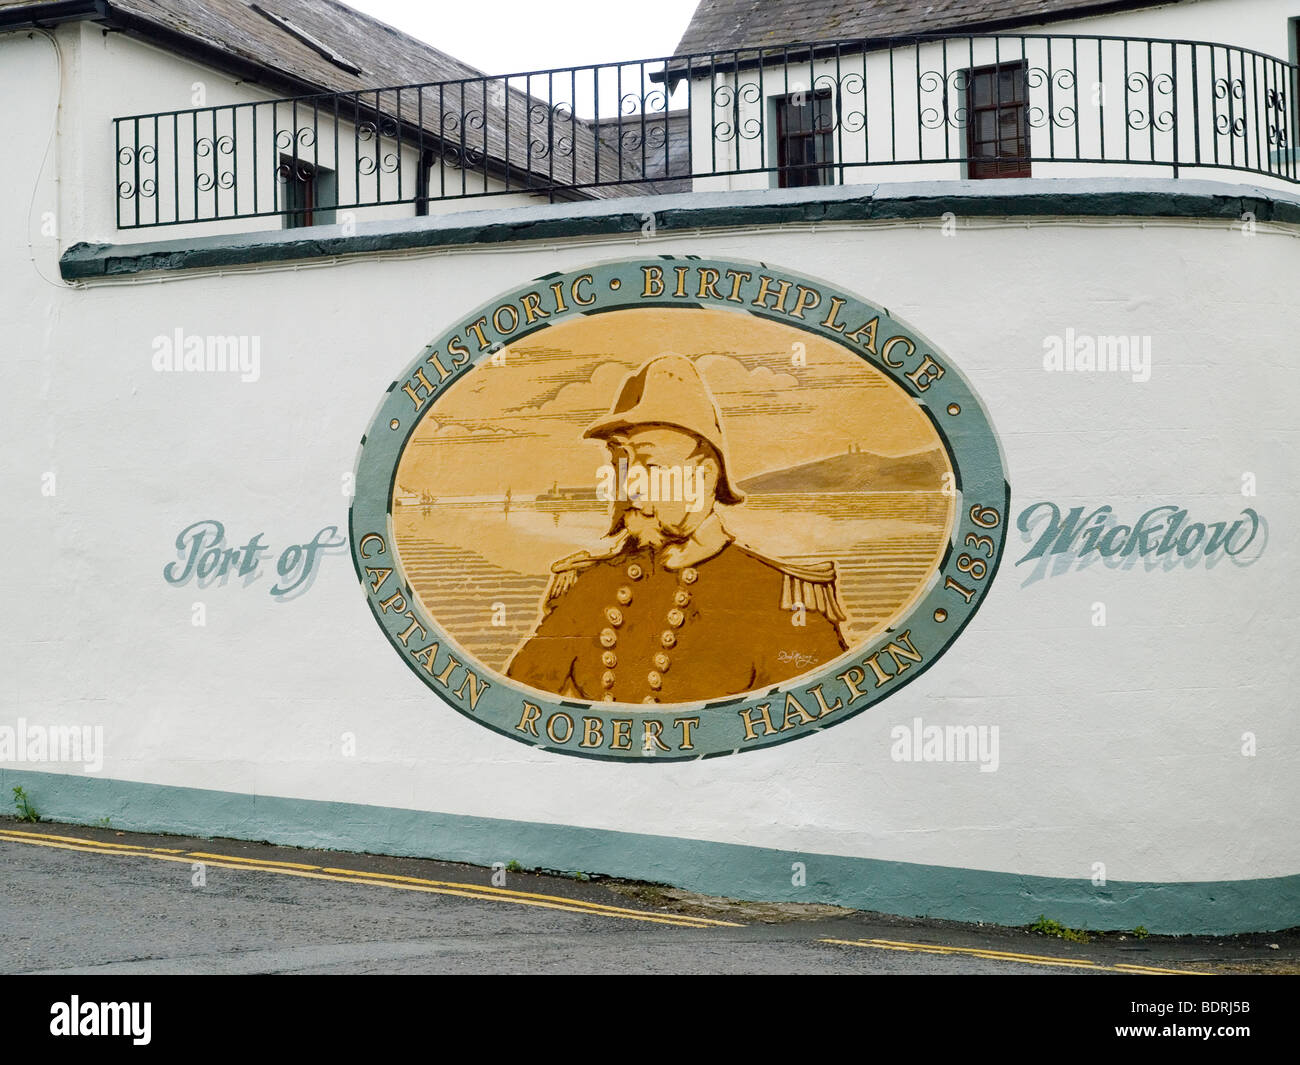 Painted mural in Wicklow, as the Historic Birthplace of Captain Robert Halpin, County Wicklow Ireland 2009 - Stock Image